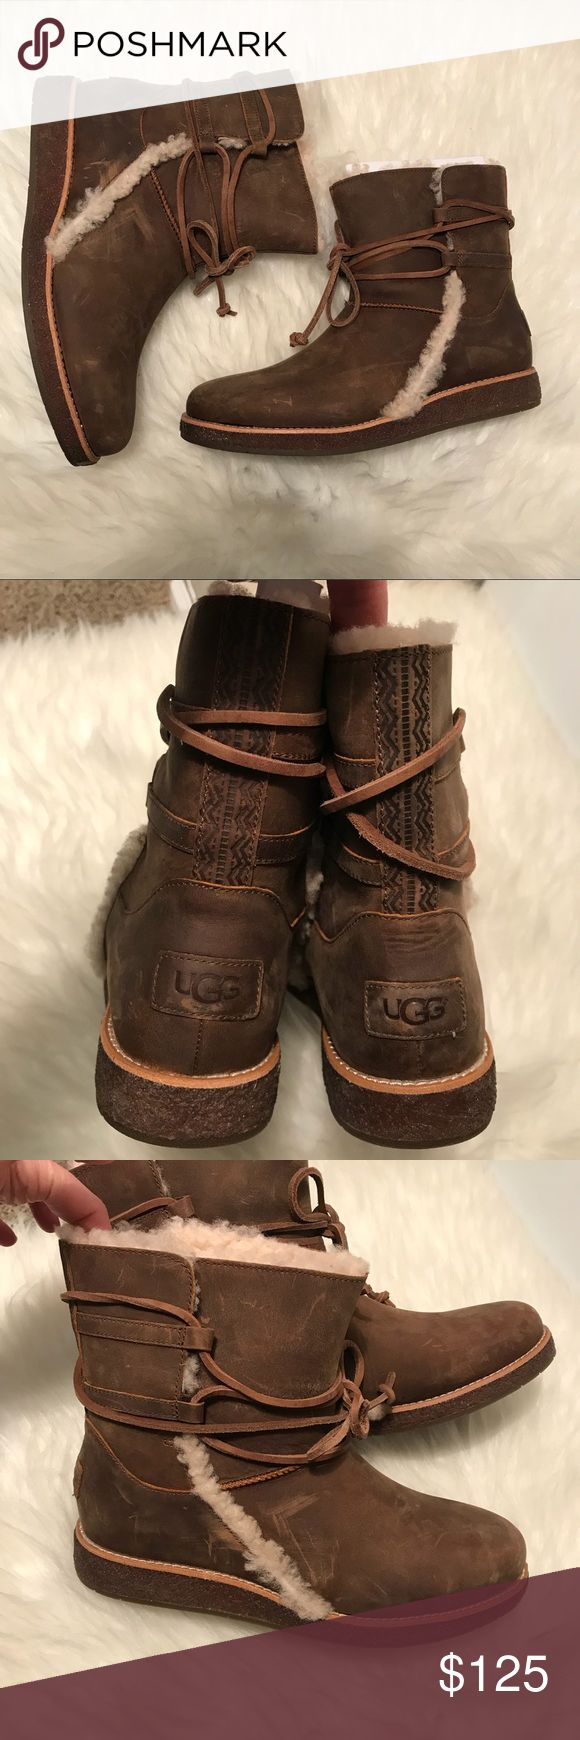 Ugg Rianne boot NEW Fab boots!  New!  Never been worn.  Natural scuffing on leather.  Size 8.  Shearling on ankles but leather footbed.  Makes a great Christmas present UGG Shoes Ankle Boots & Booties